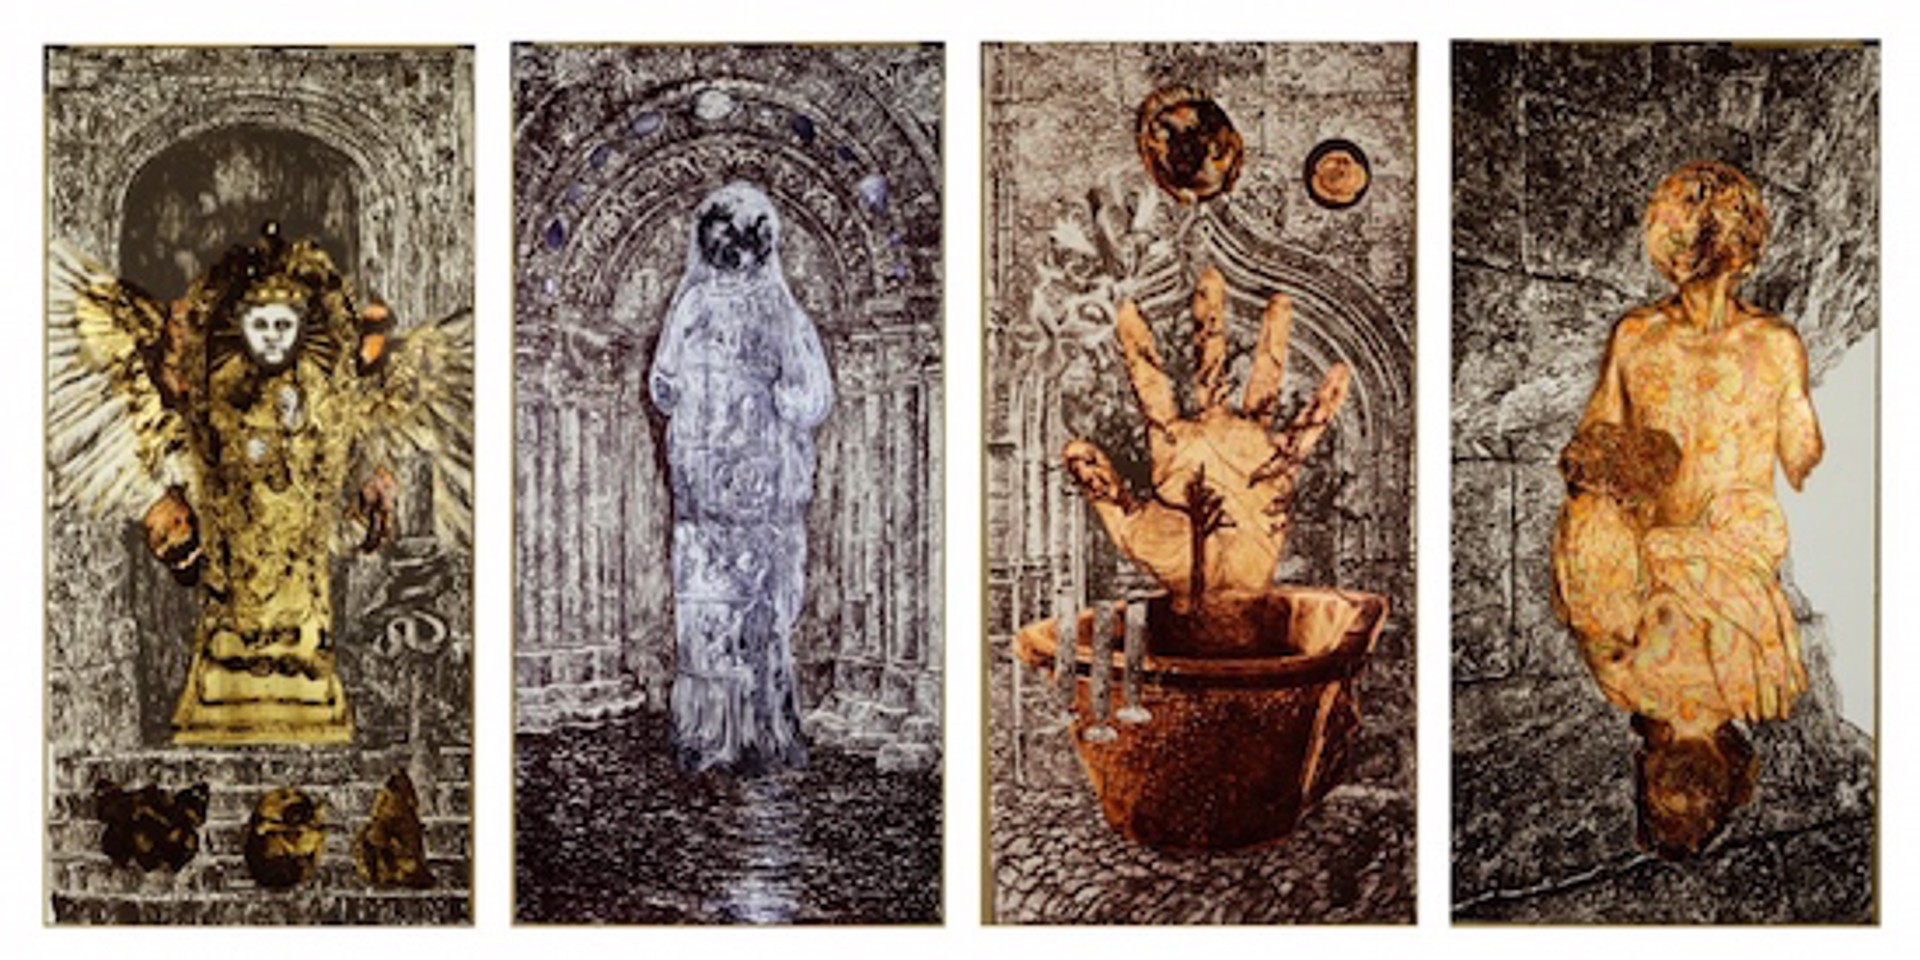 Alchemical Doors for C.A. Meier ll (The Copper Hand) by Ann McCoy